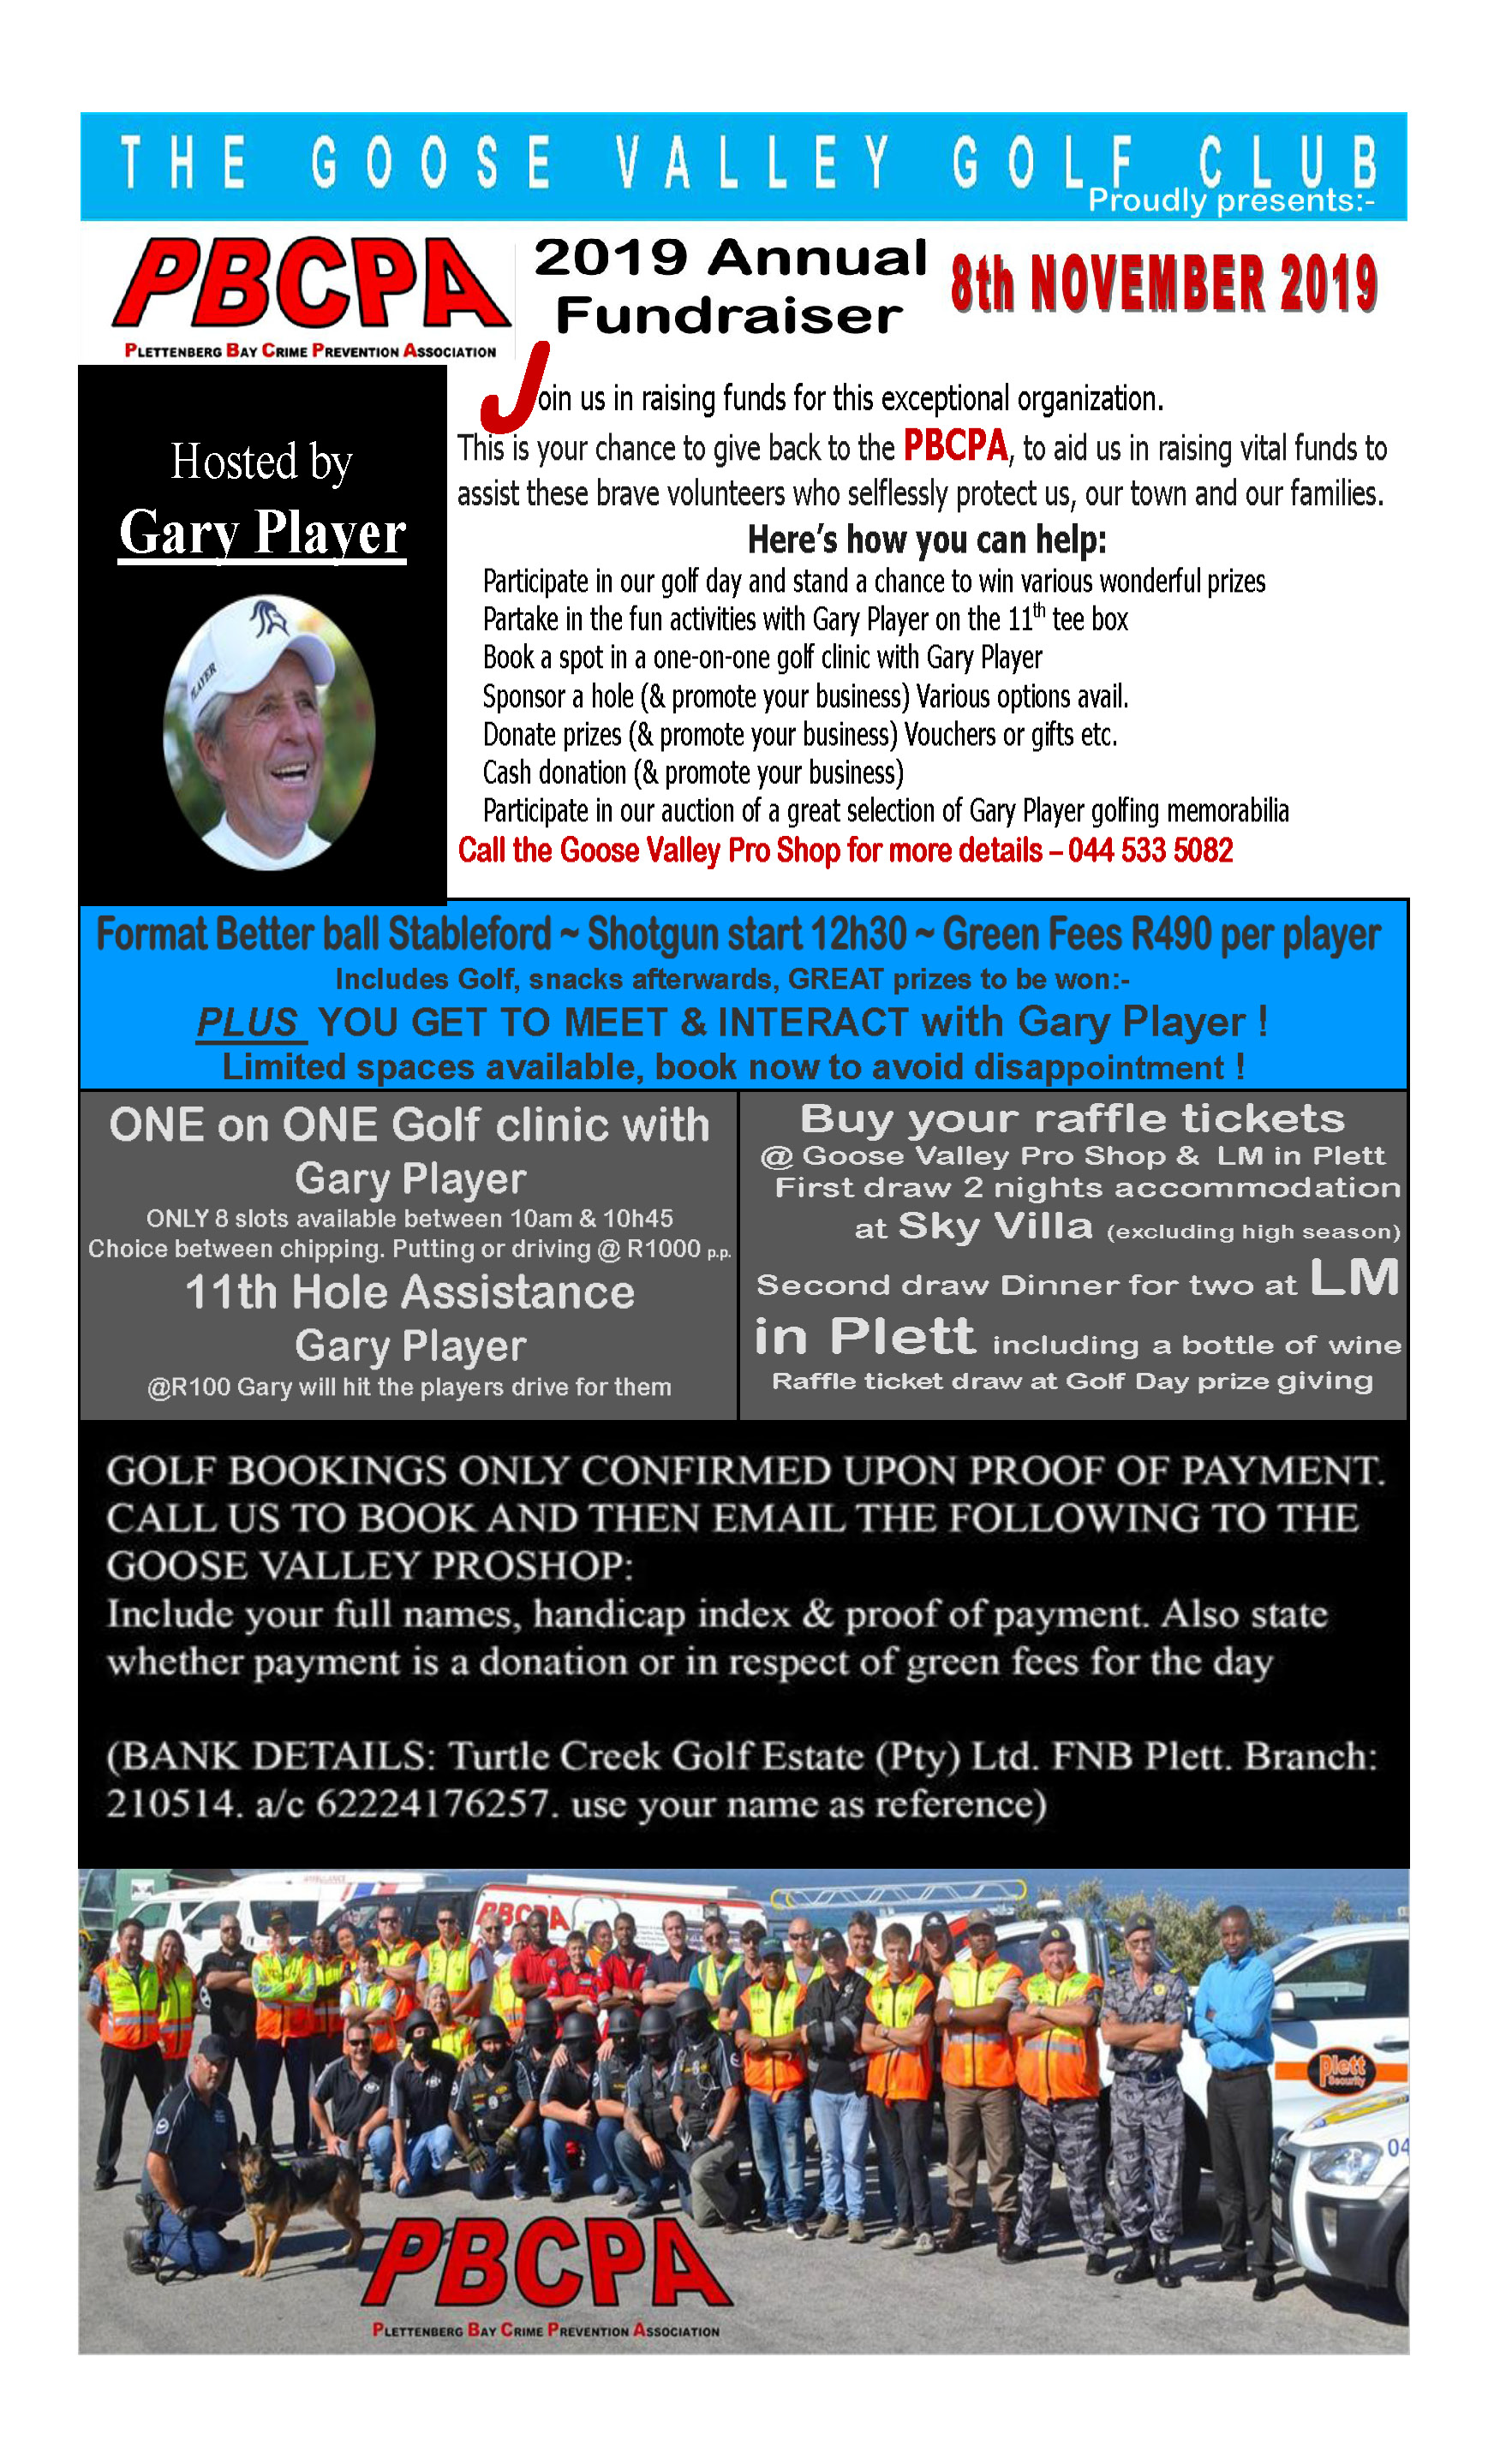 Join Gary Player on 8 November at the Goose Valley Golf Course, for a golfing day fundraiser in aid of PBCPA, Plettenberg Bay Crime Prevention Association.